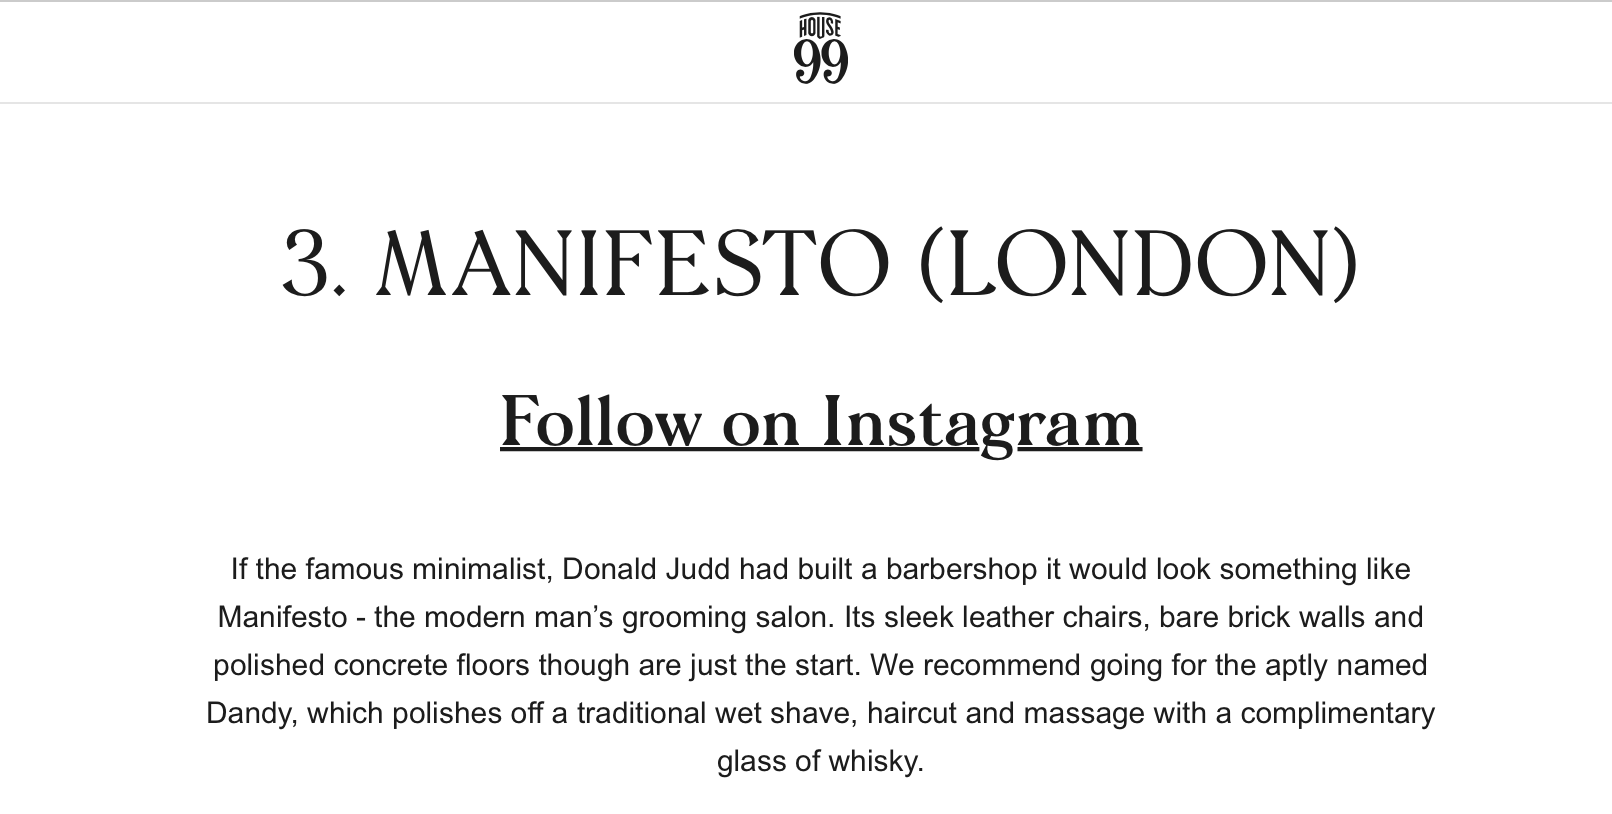 David Beckham's House 99 have rated Manifesto number 3 for the best barbershops in the world.